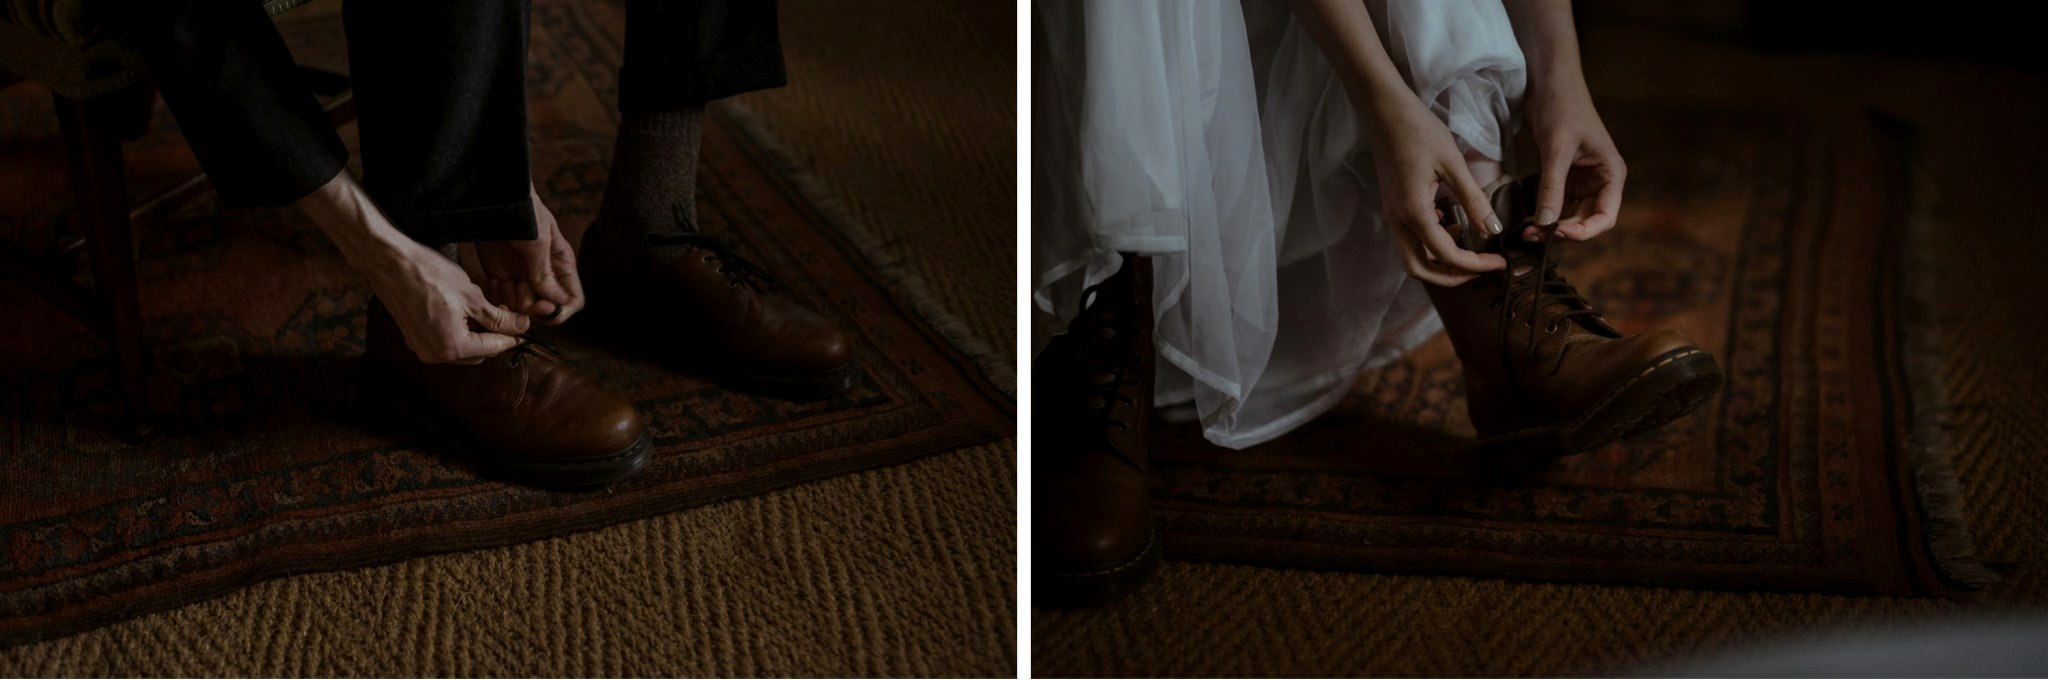 Bride and groom putting their shoes on ready to elope in Glencoe, Scotland